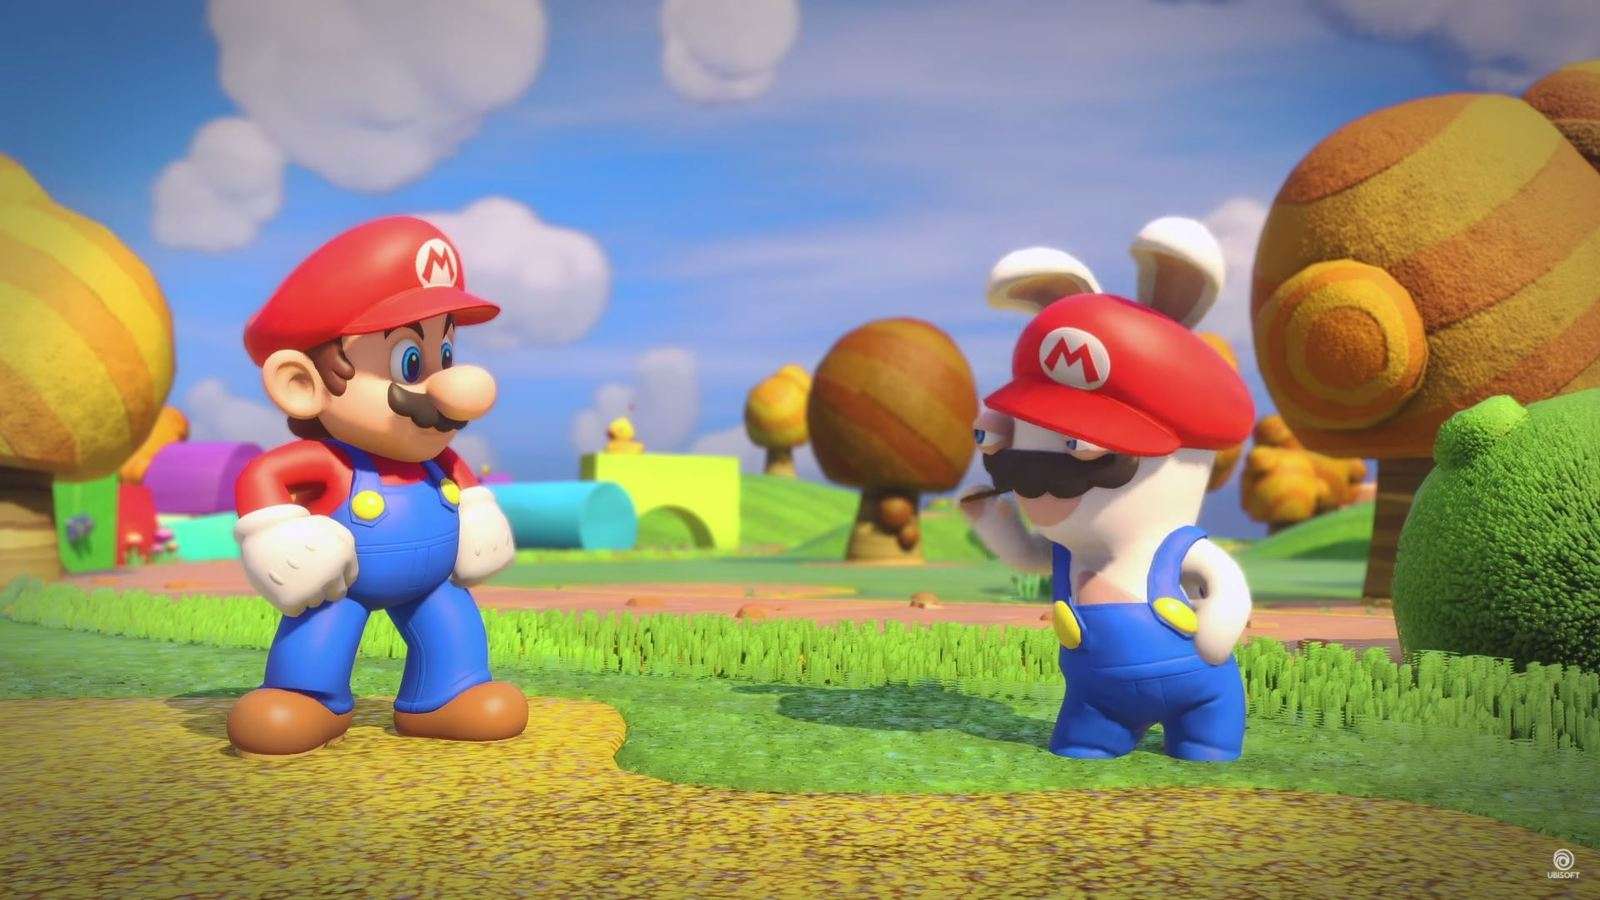 Mario + Rabbids: Kingdom Battle for Nintendo Switch image